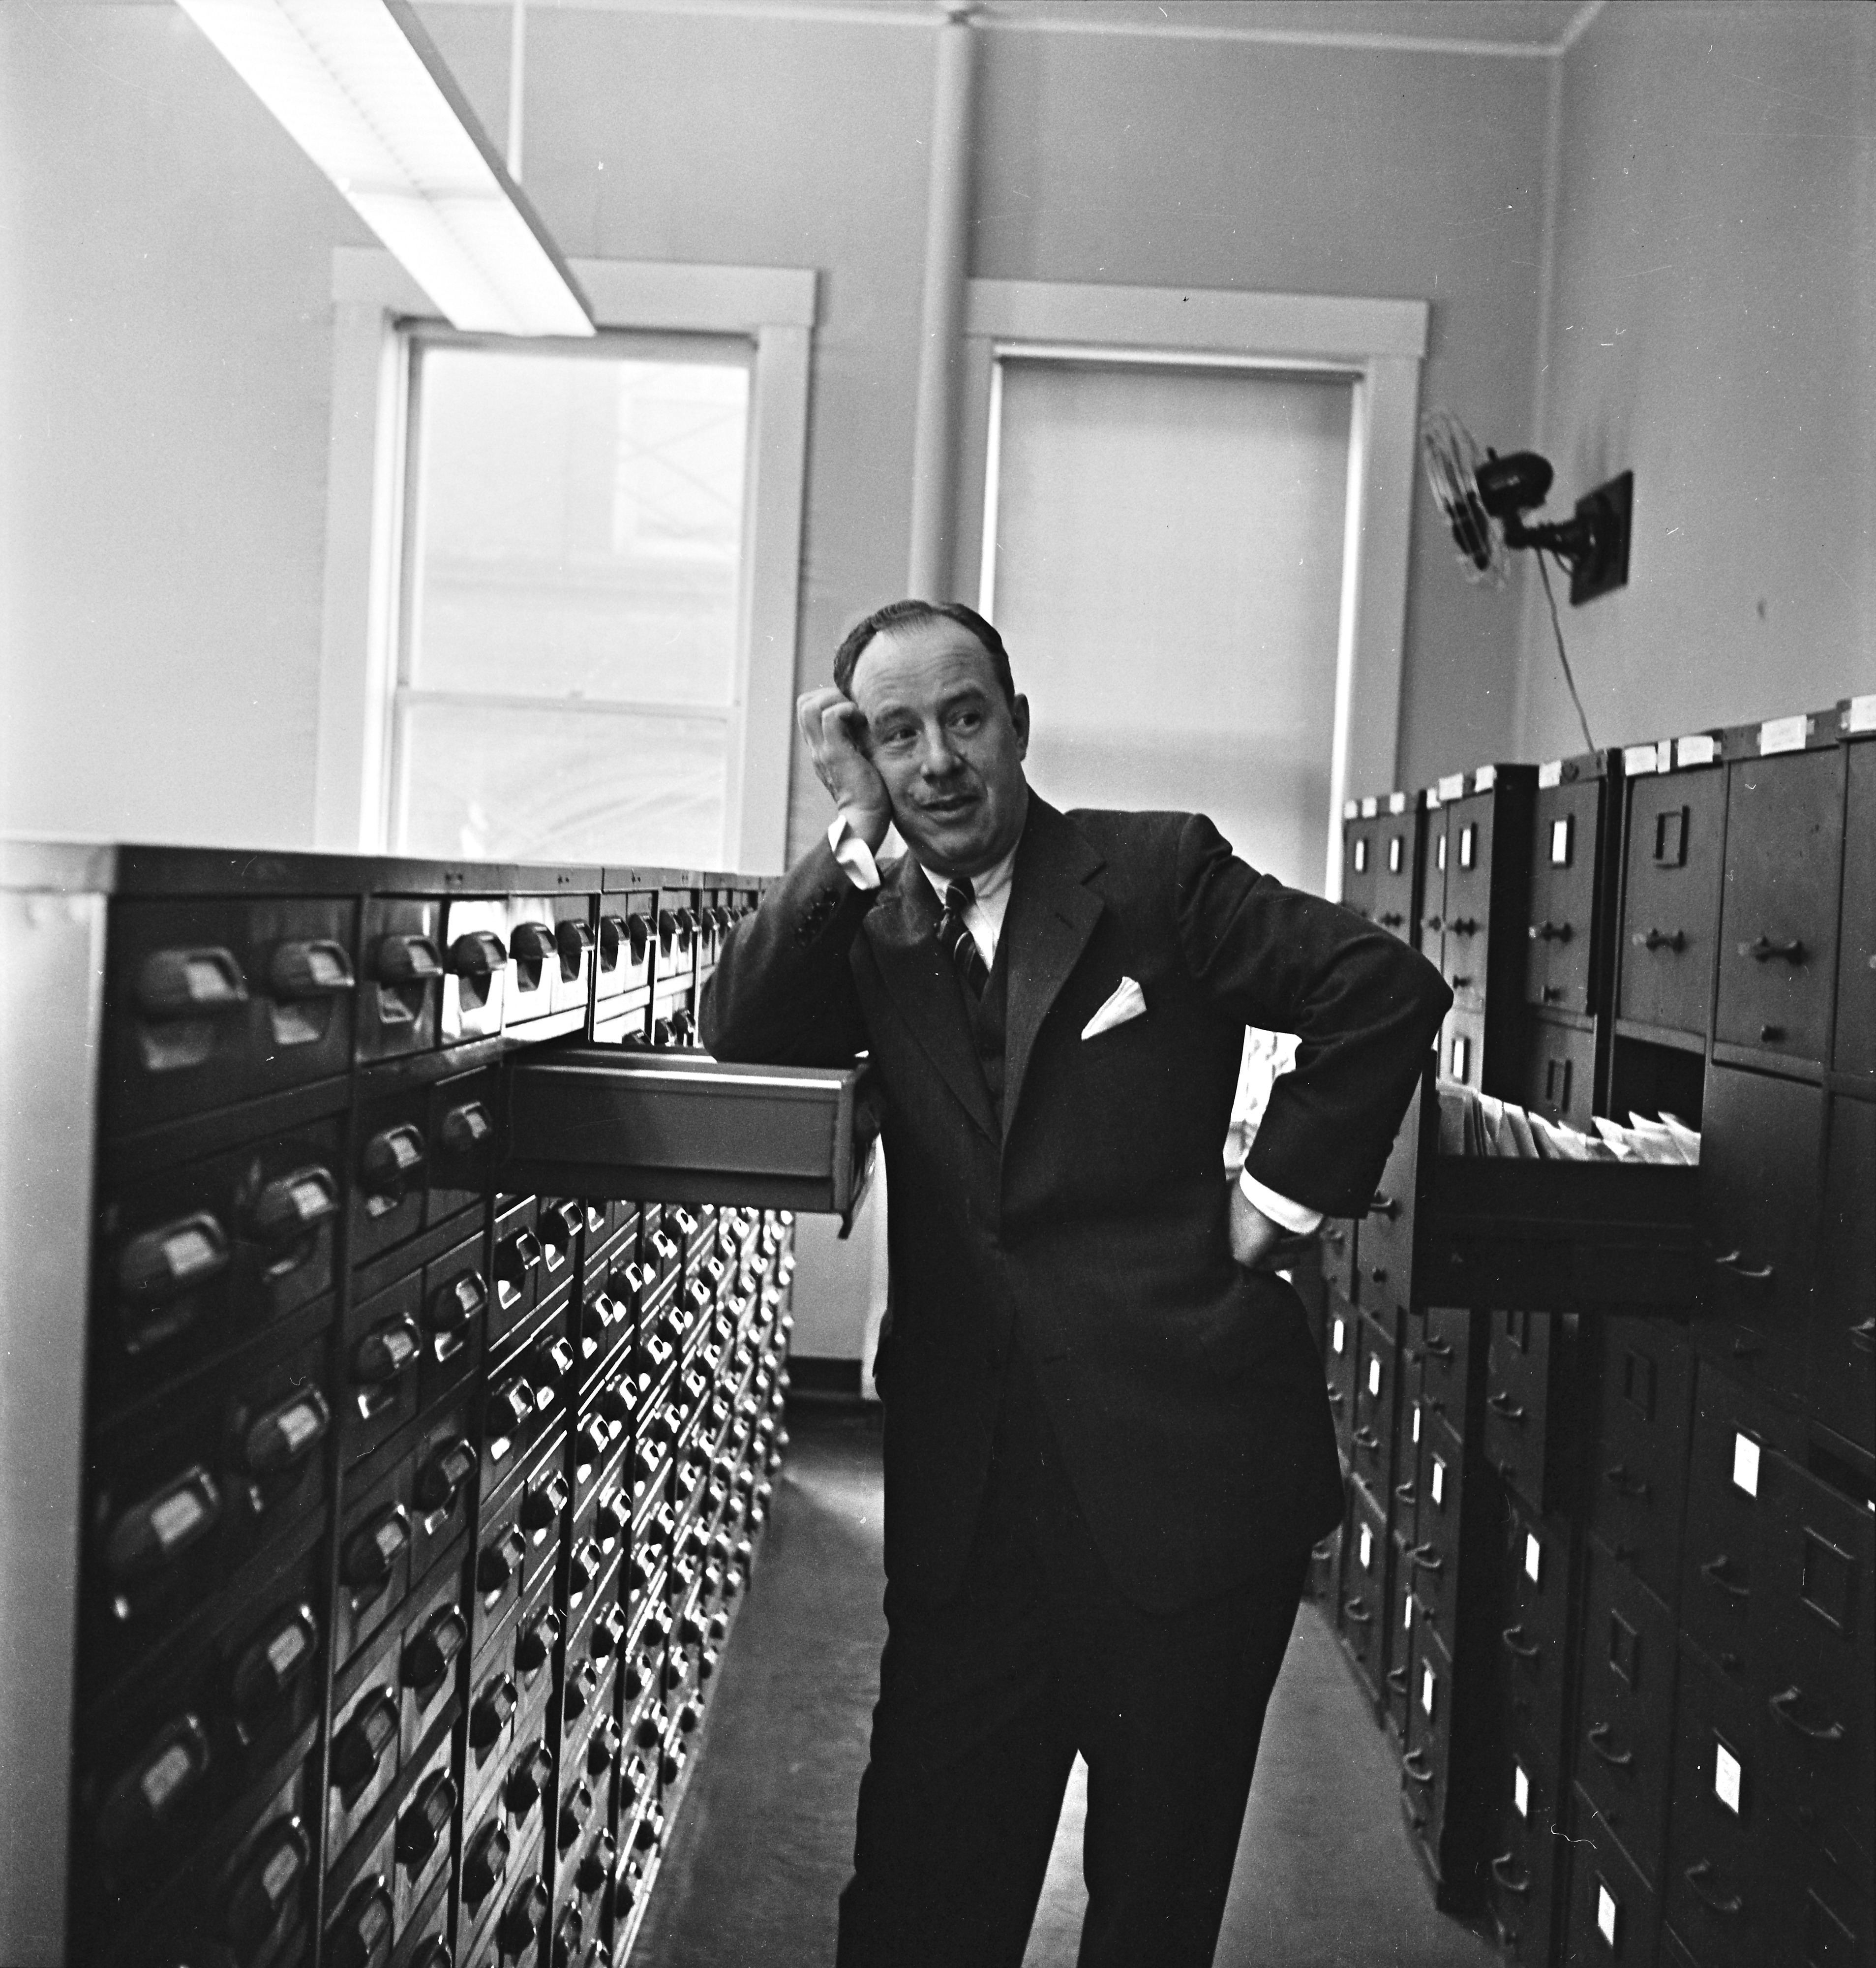 Dr. Thomas Francis, with file drawers containing statistical medical information, April 1955 image